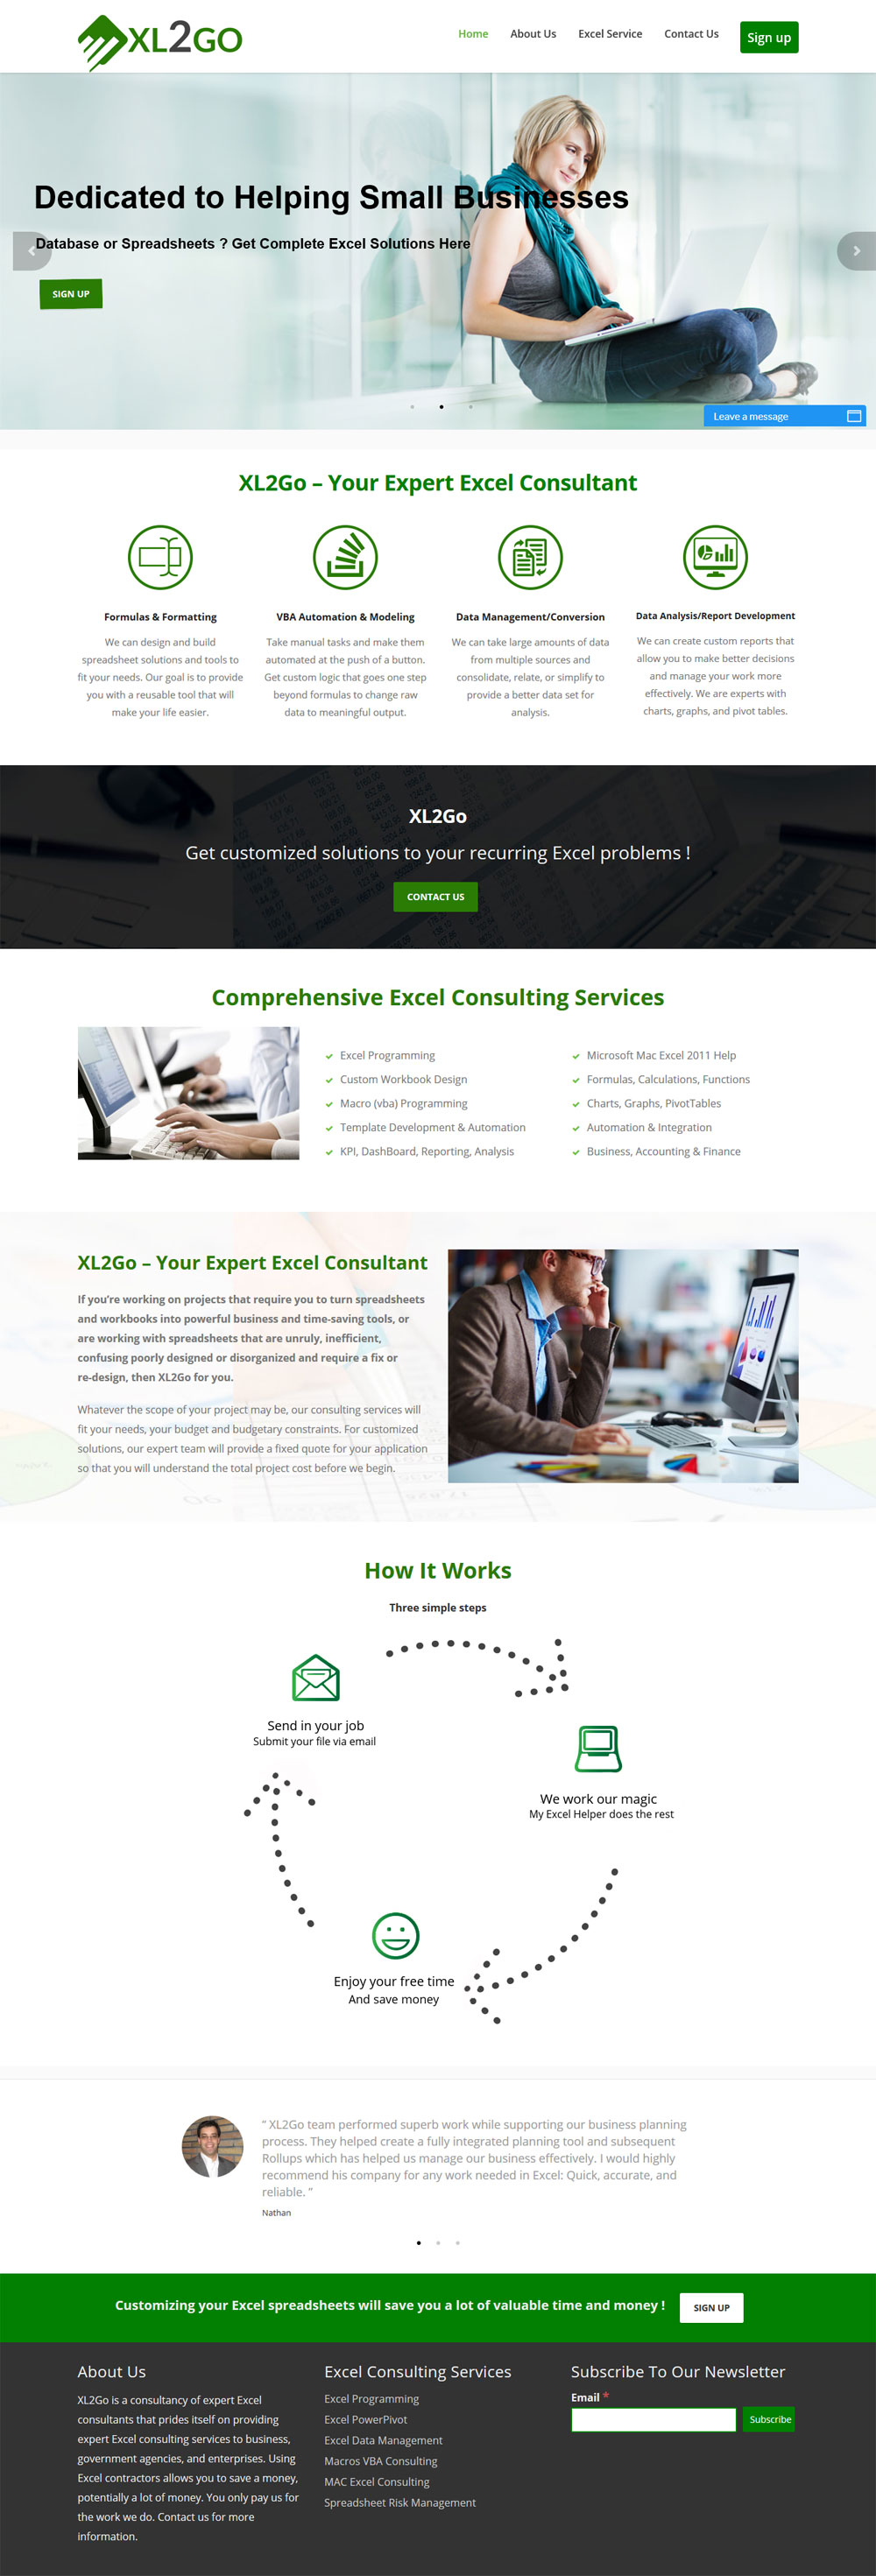 Website Development Markham